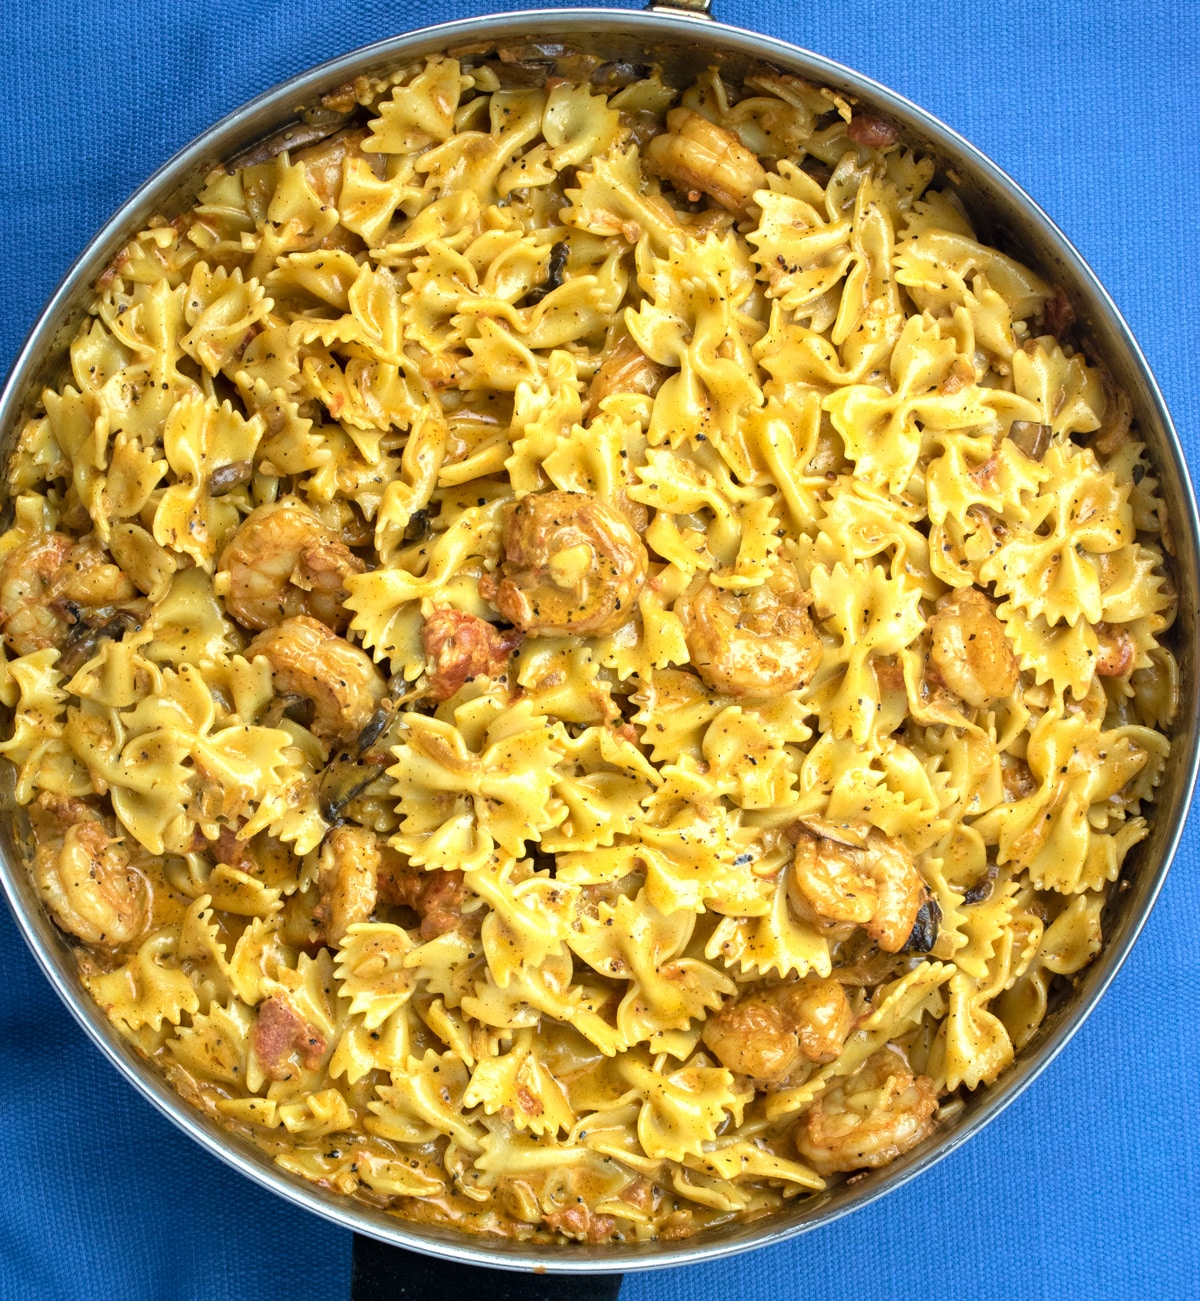 creamy shrimp pasta with mushrooms in a frying pan